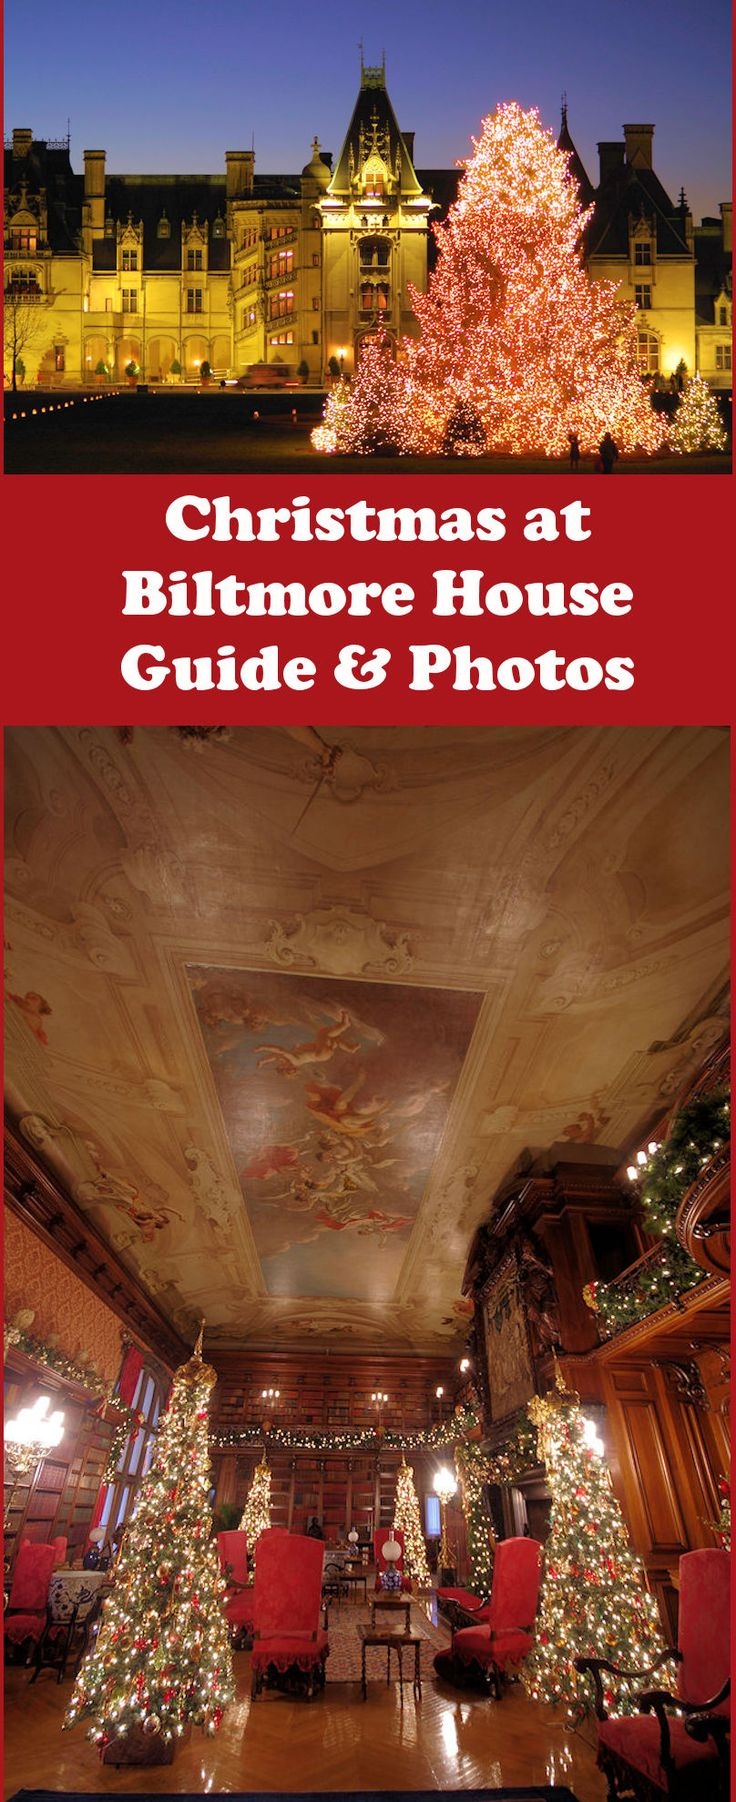 Christmas at Biltmore House is magical with 60 decorated trees inside the castle in Asheville, NC. Take a tour with our insider's guide: https://www.romanticasheville.com/biltmorechristmas.htm